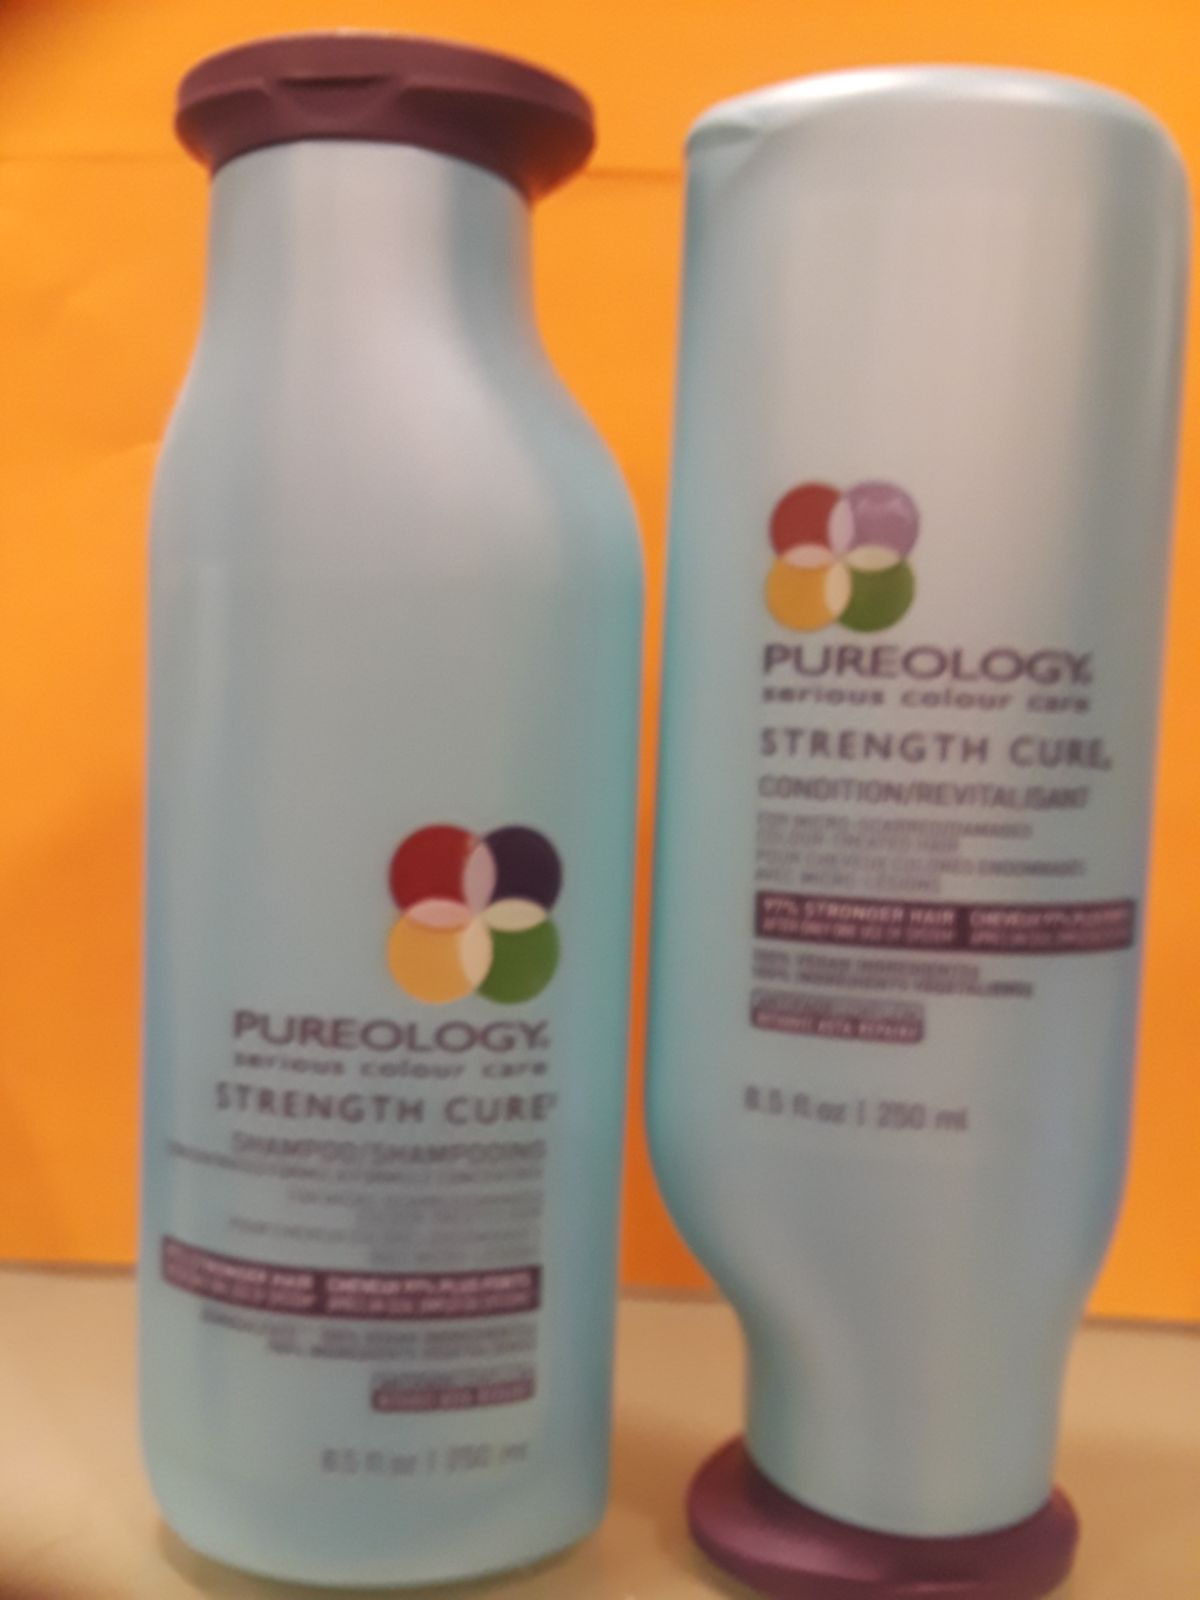 Pureology Strength Cure Duo..Retail $65